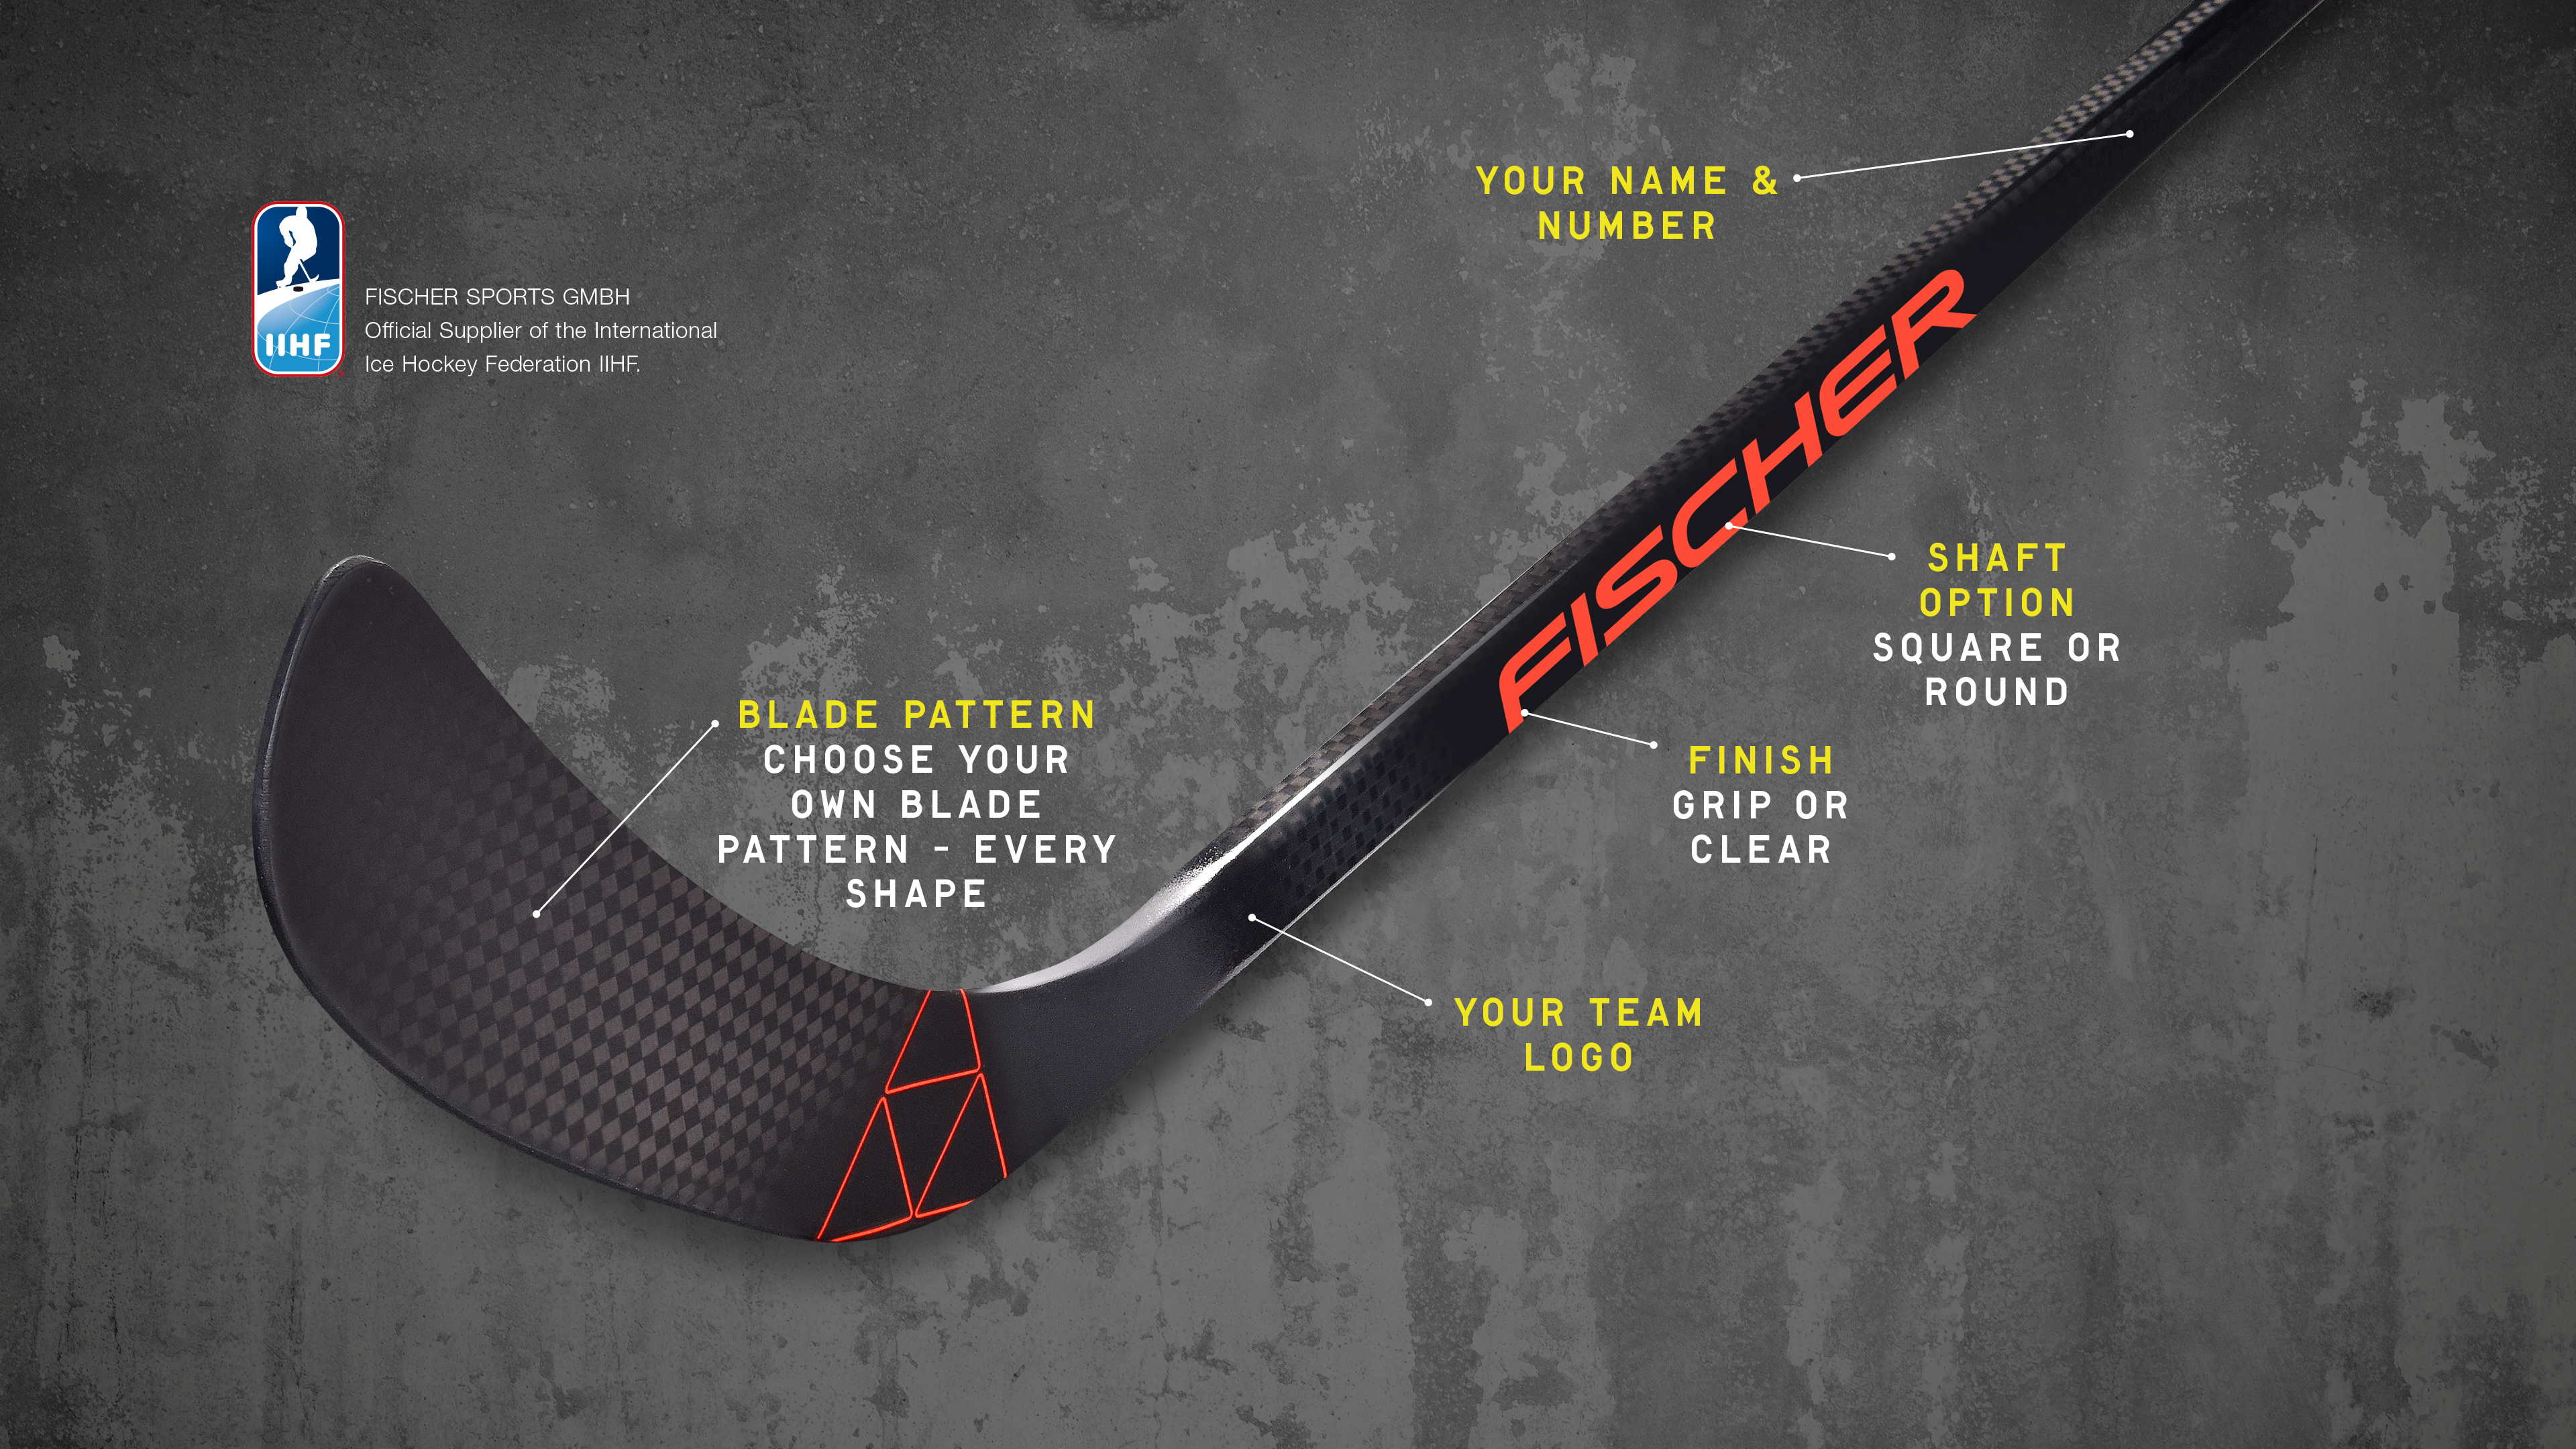 Hockey Fischer Sports